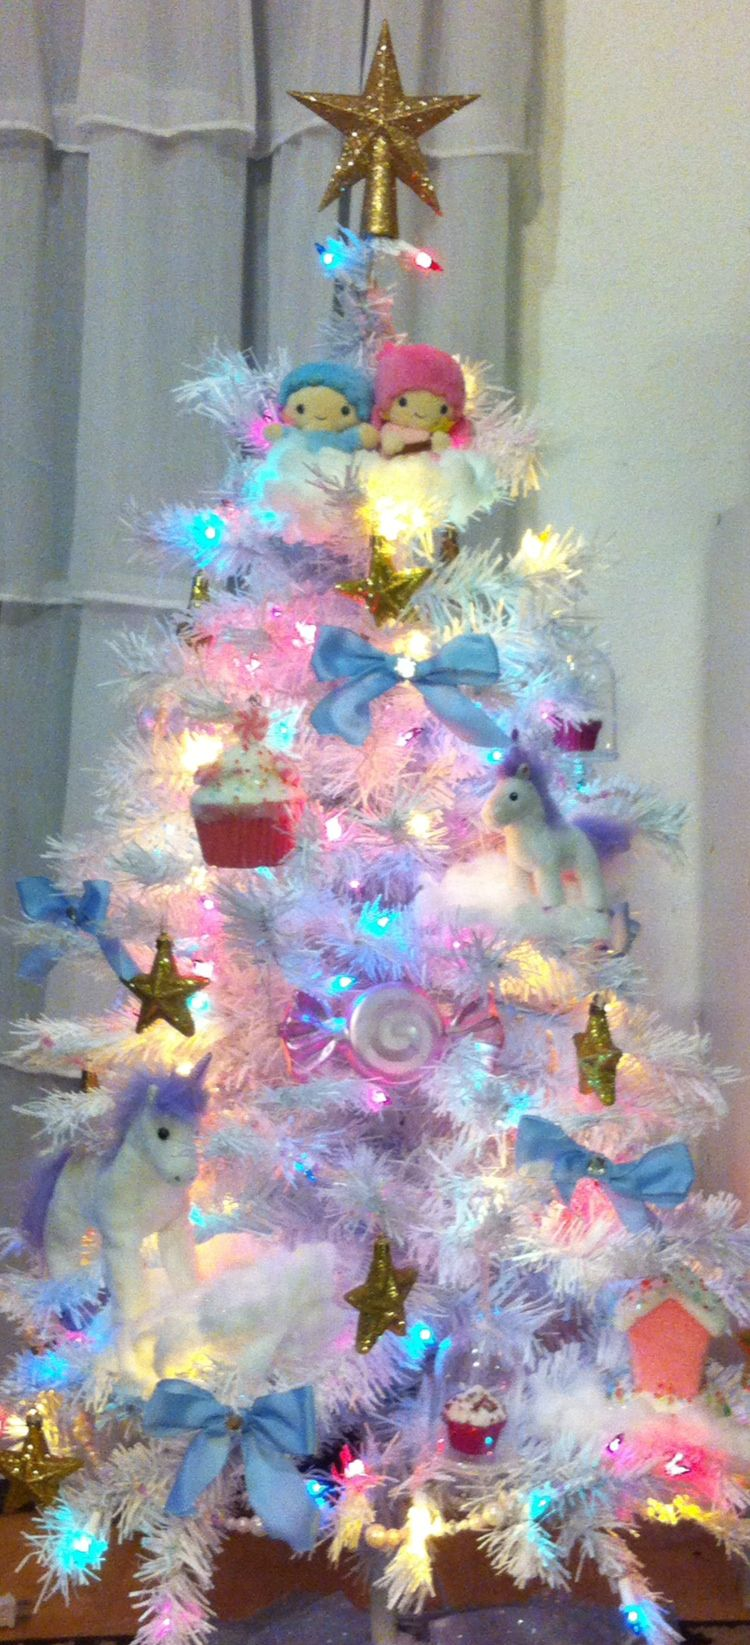 little twin stars christmas tree pastel christmas tree unicorn stars pearl crystal garland bows diy glitter clouds magical sweets